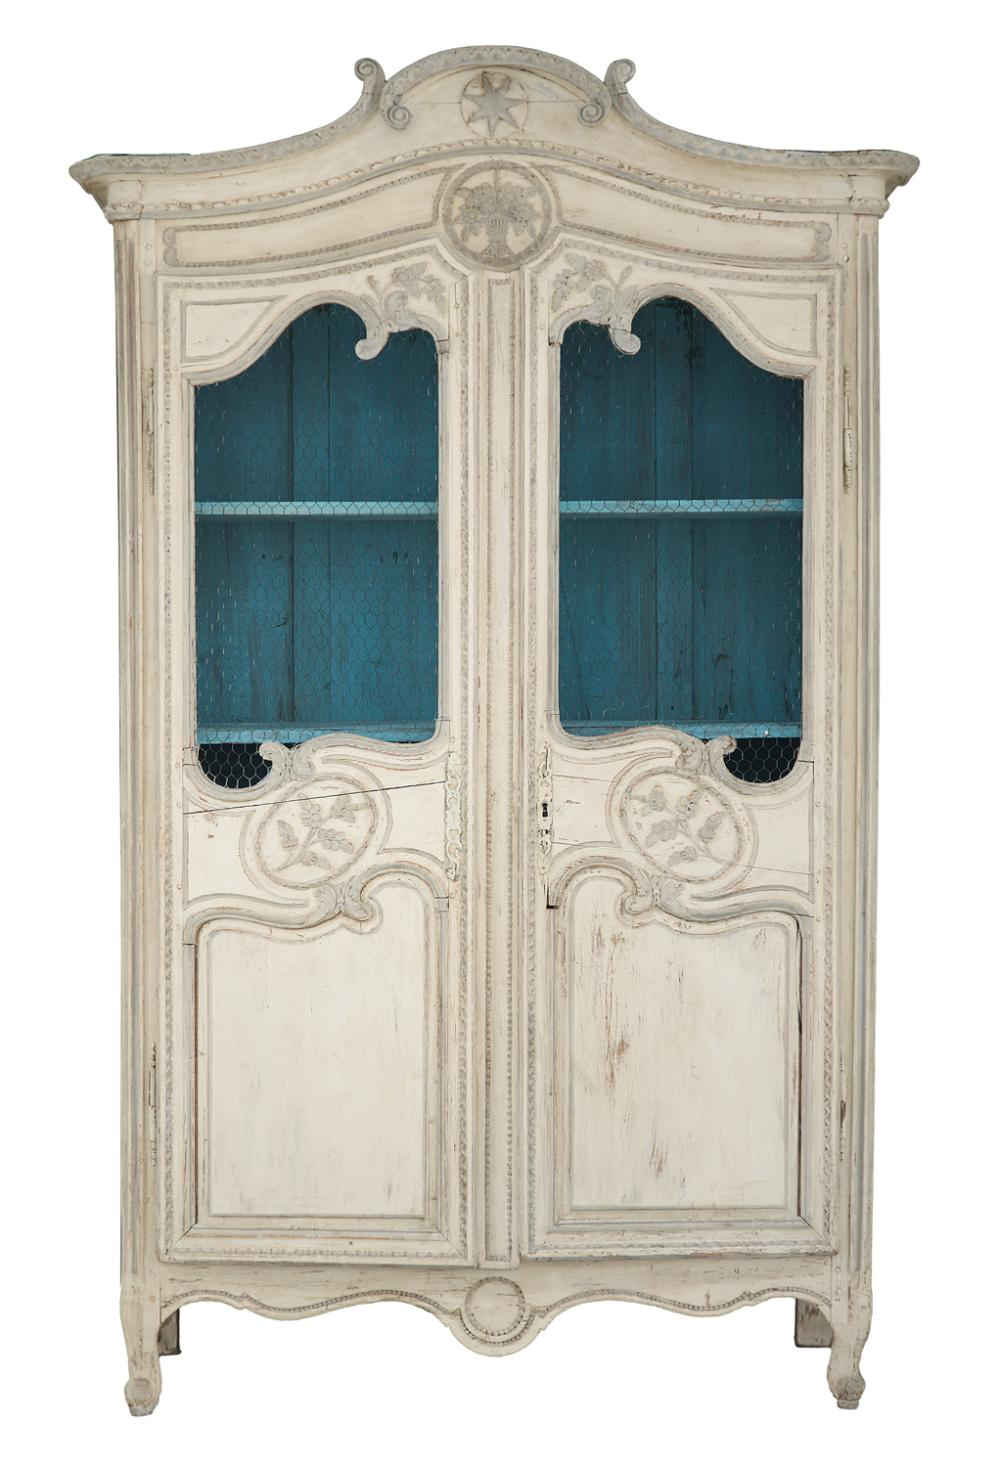 French Provincial Polychromed Armoire